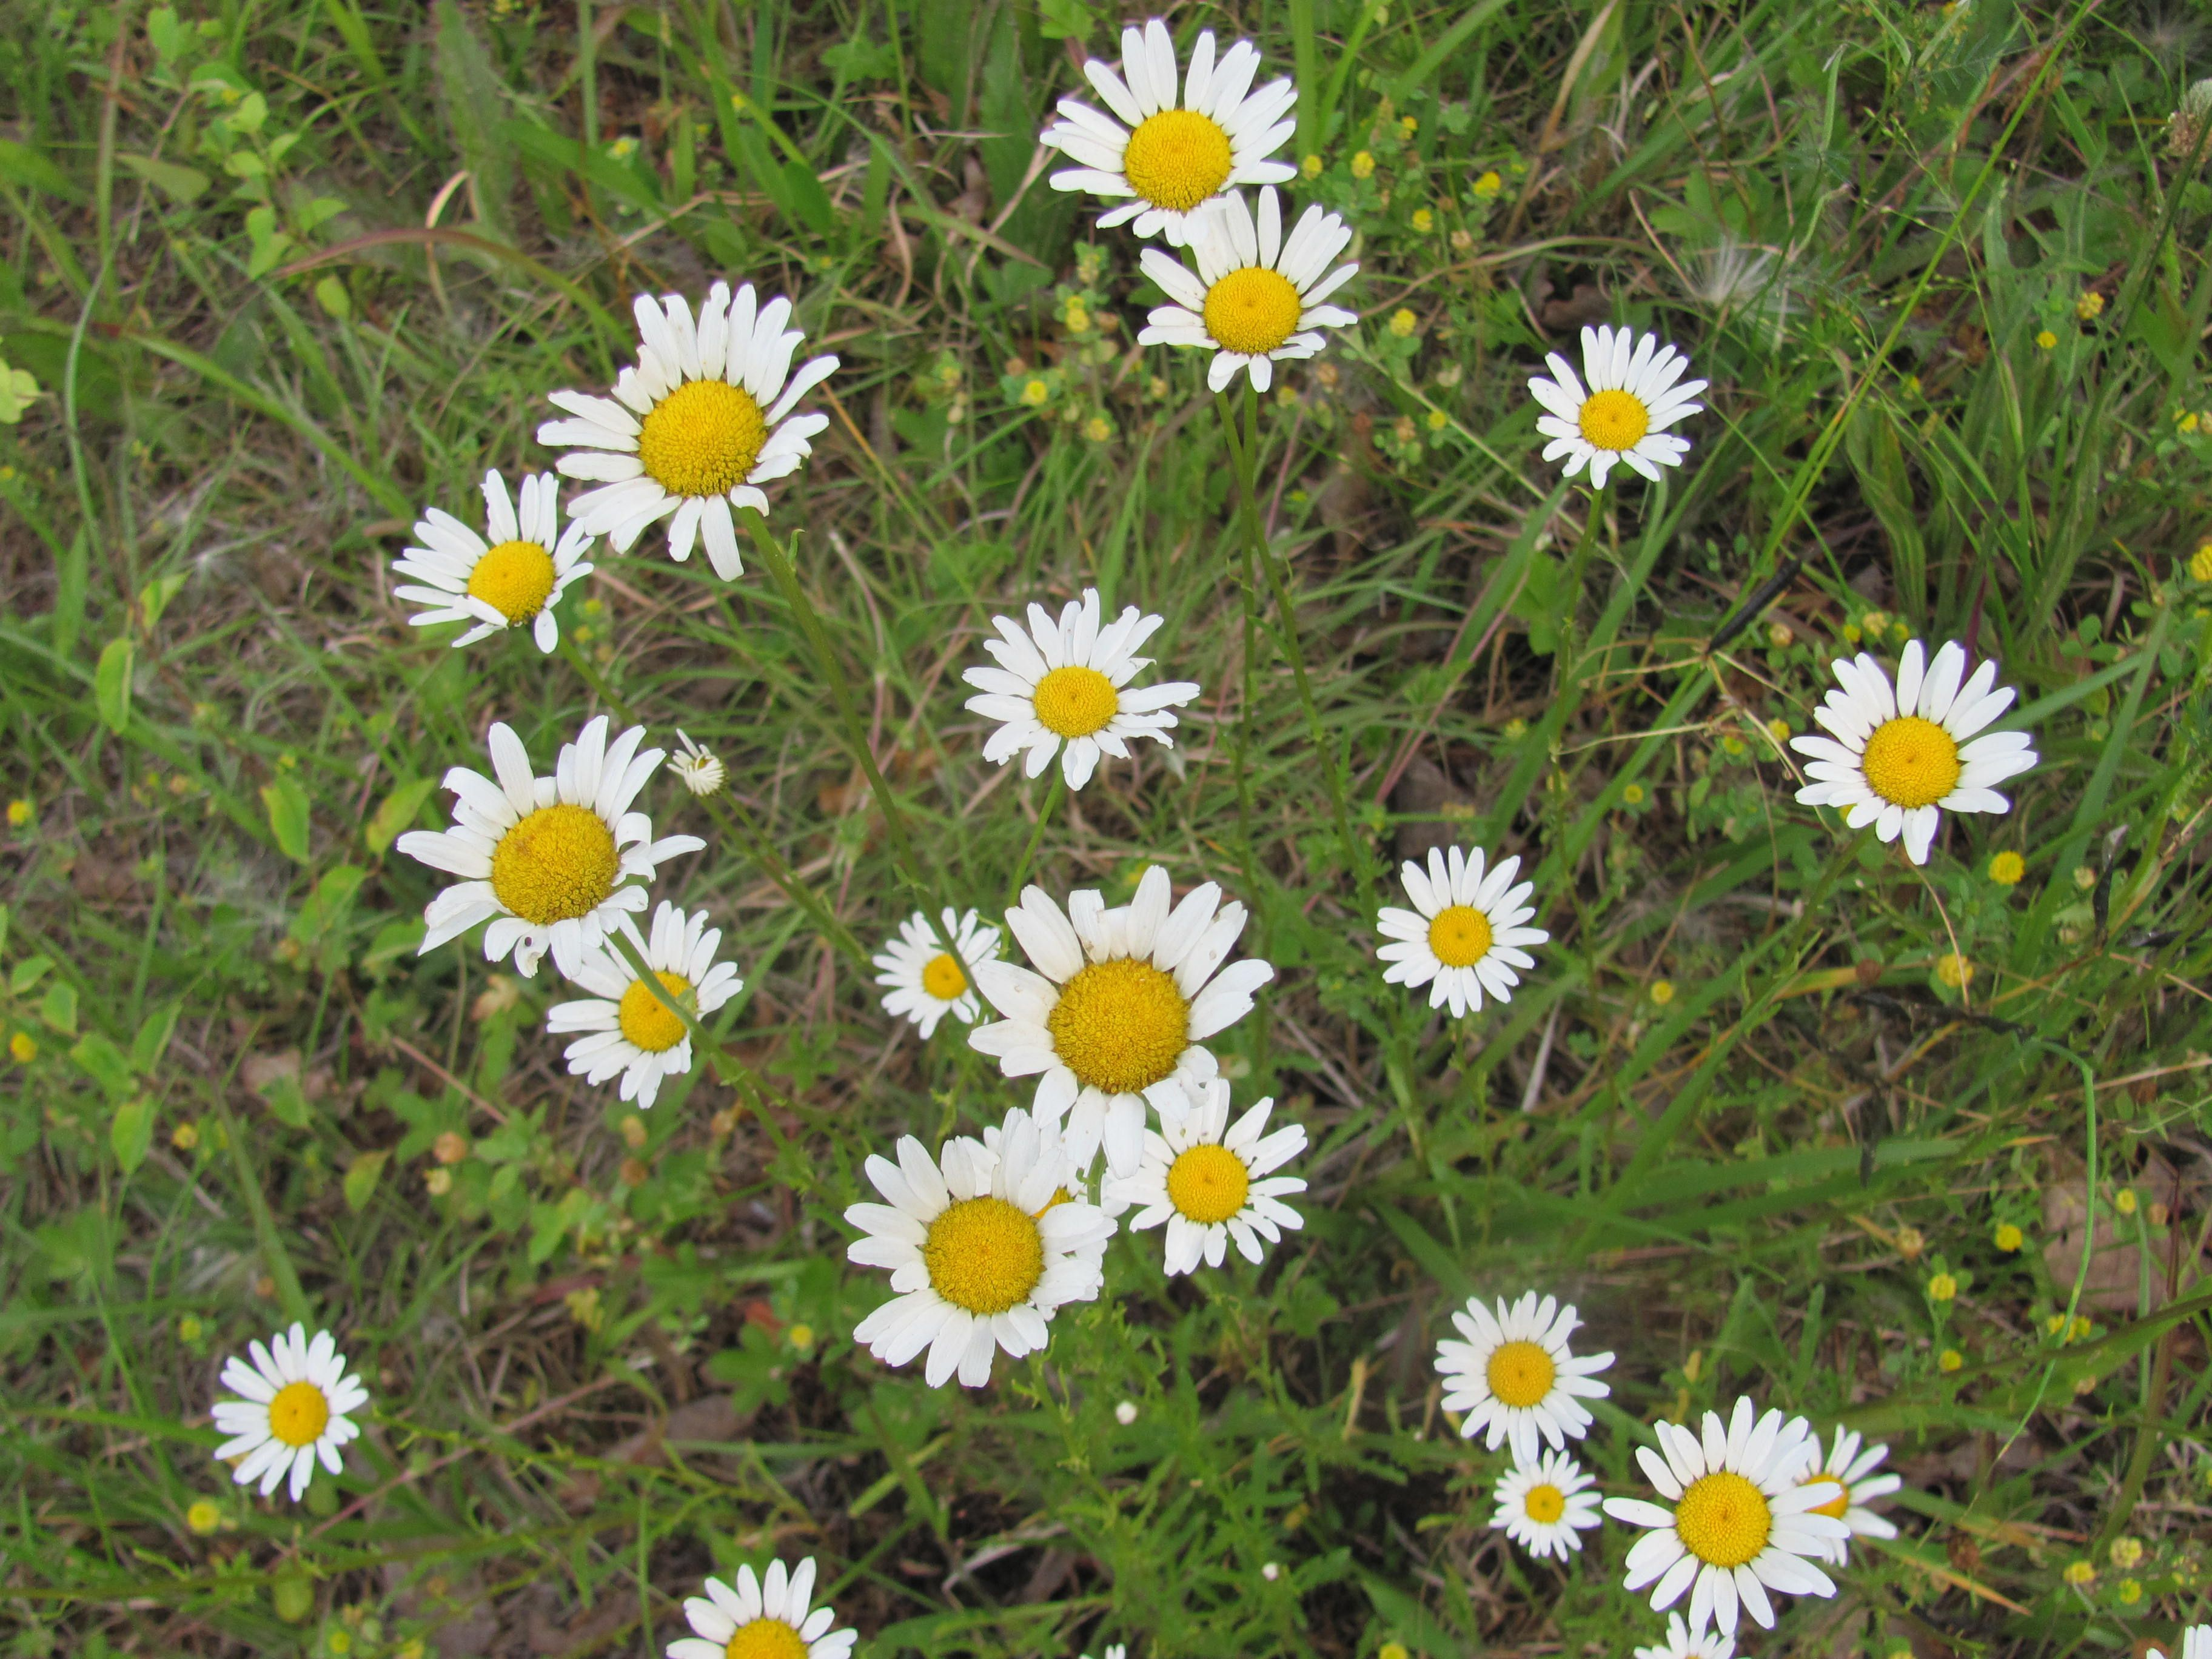 field of daisies | Photography | Pinterest Field Of Daisies